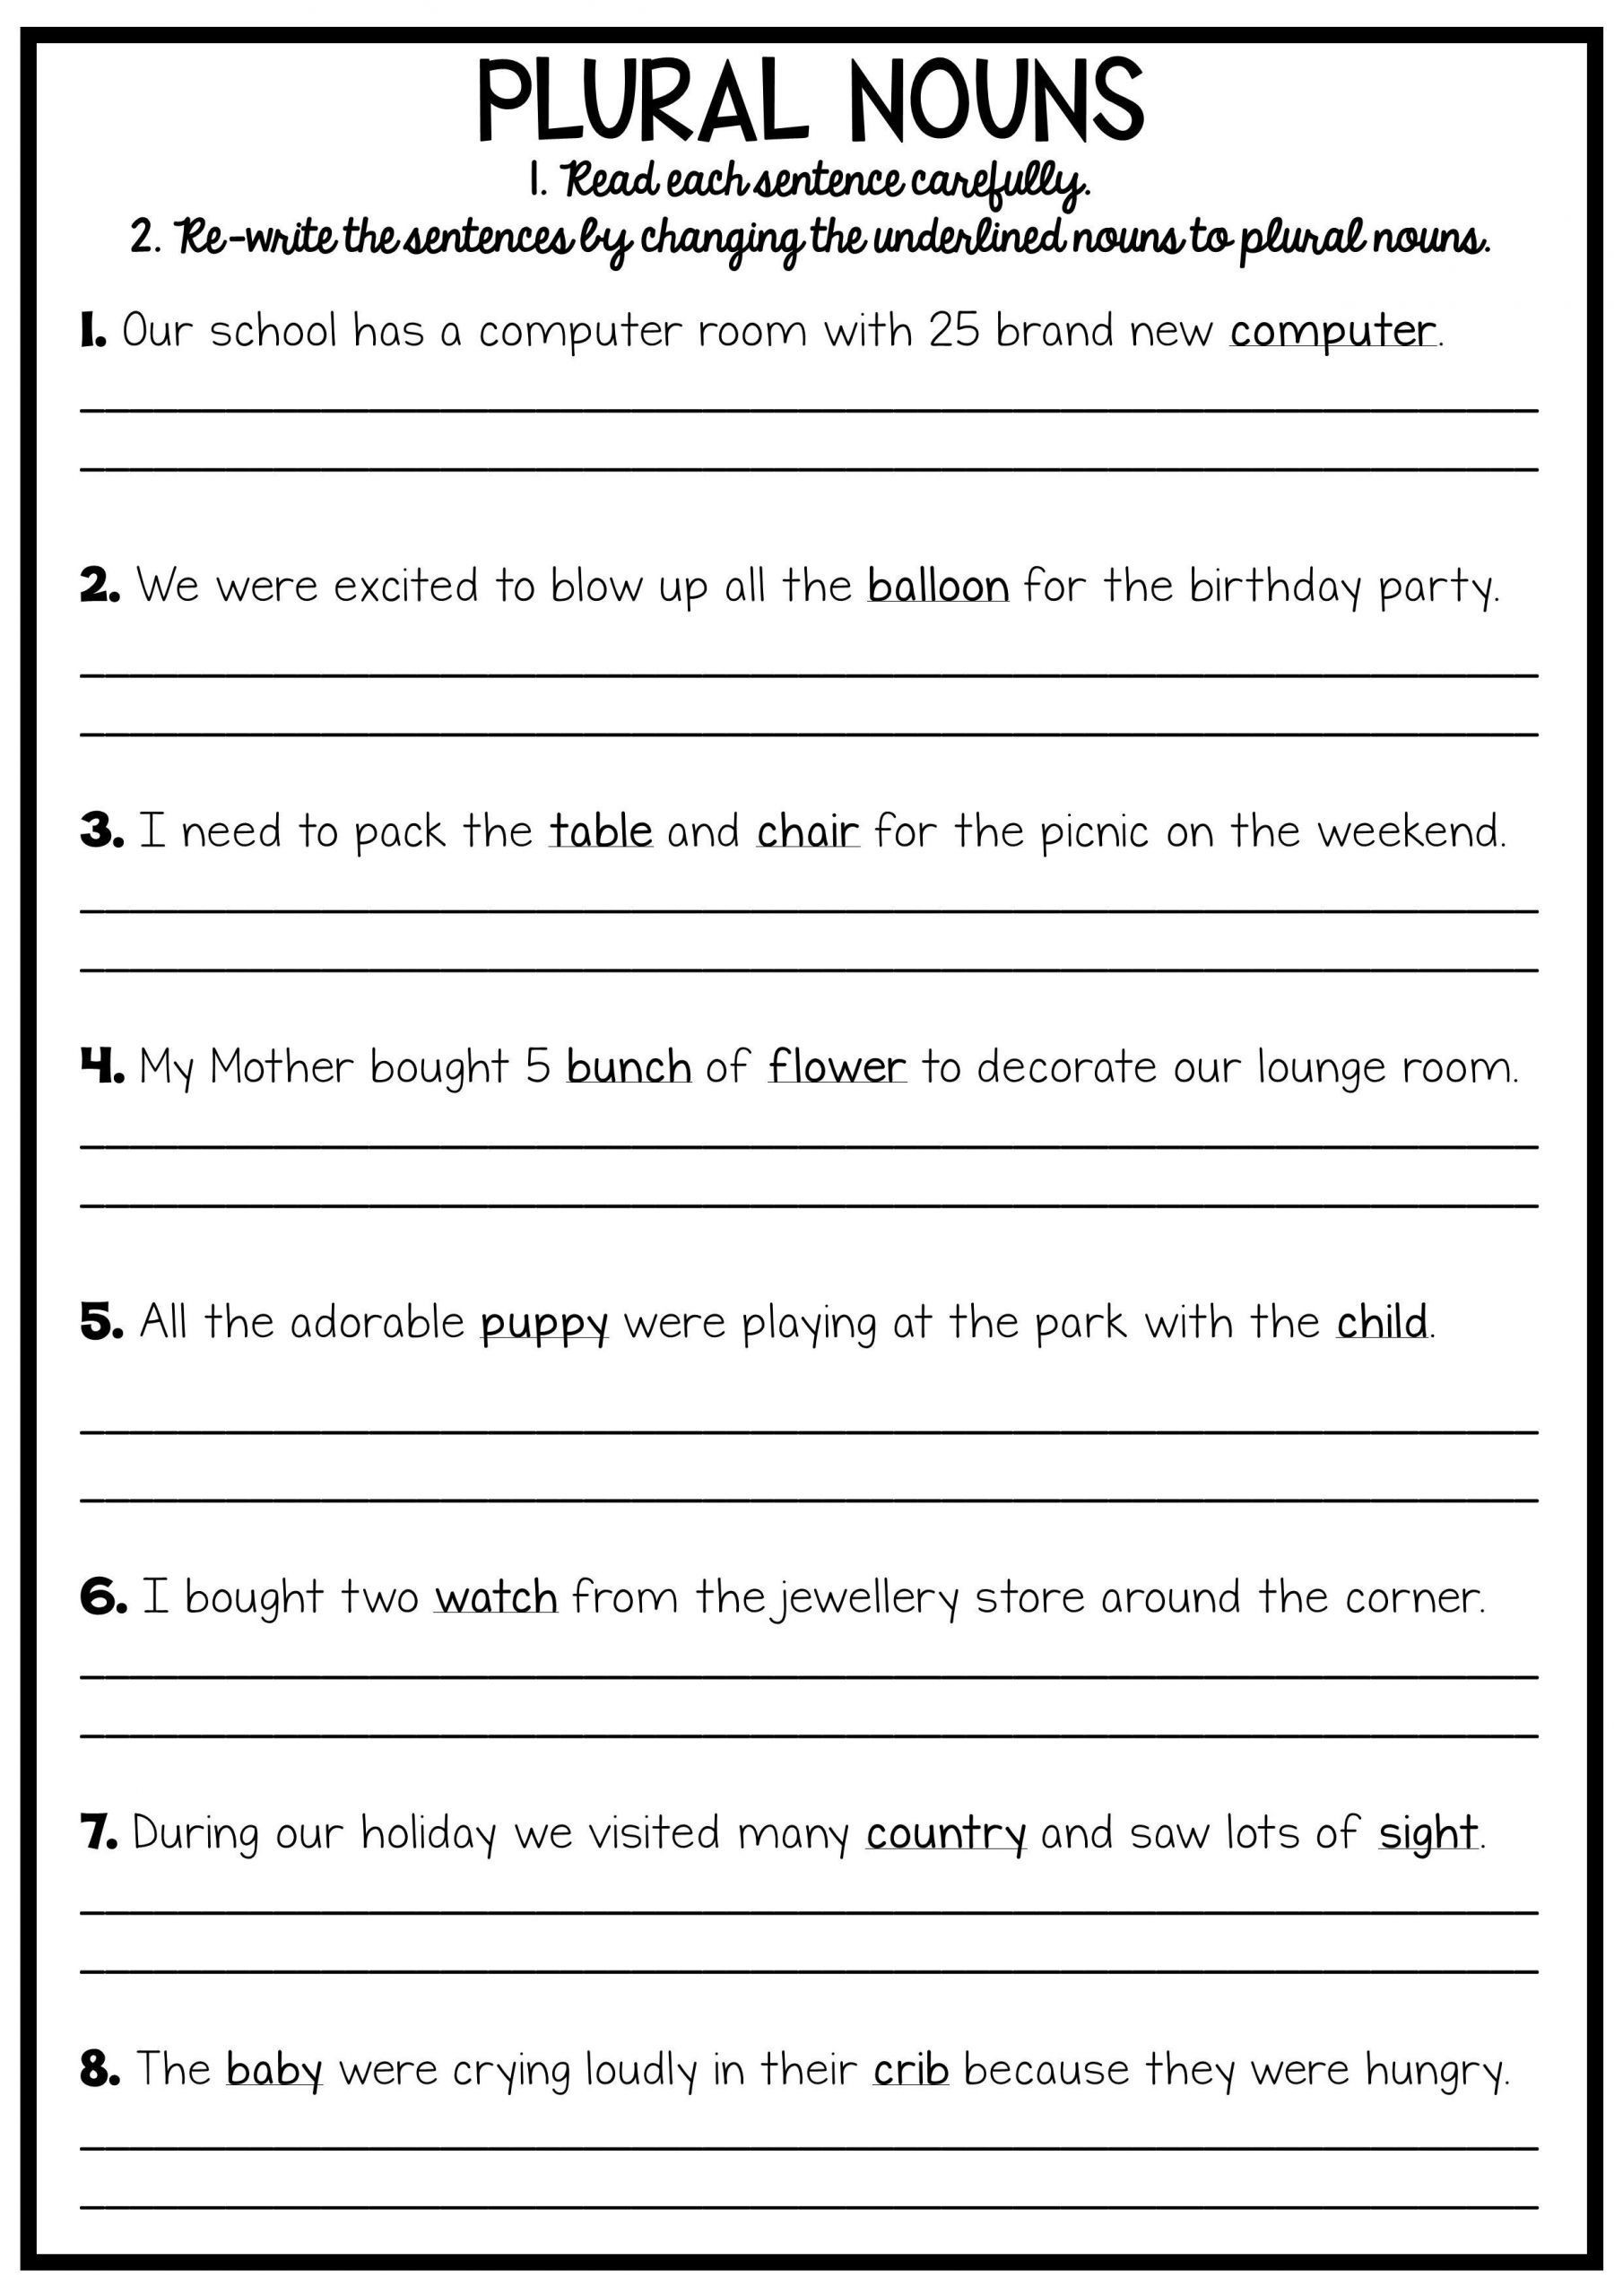 Grammar Worksheet 6th Grade 2 Pronoun Worksheets for 6th Graders Printable Reading and